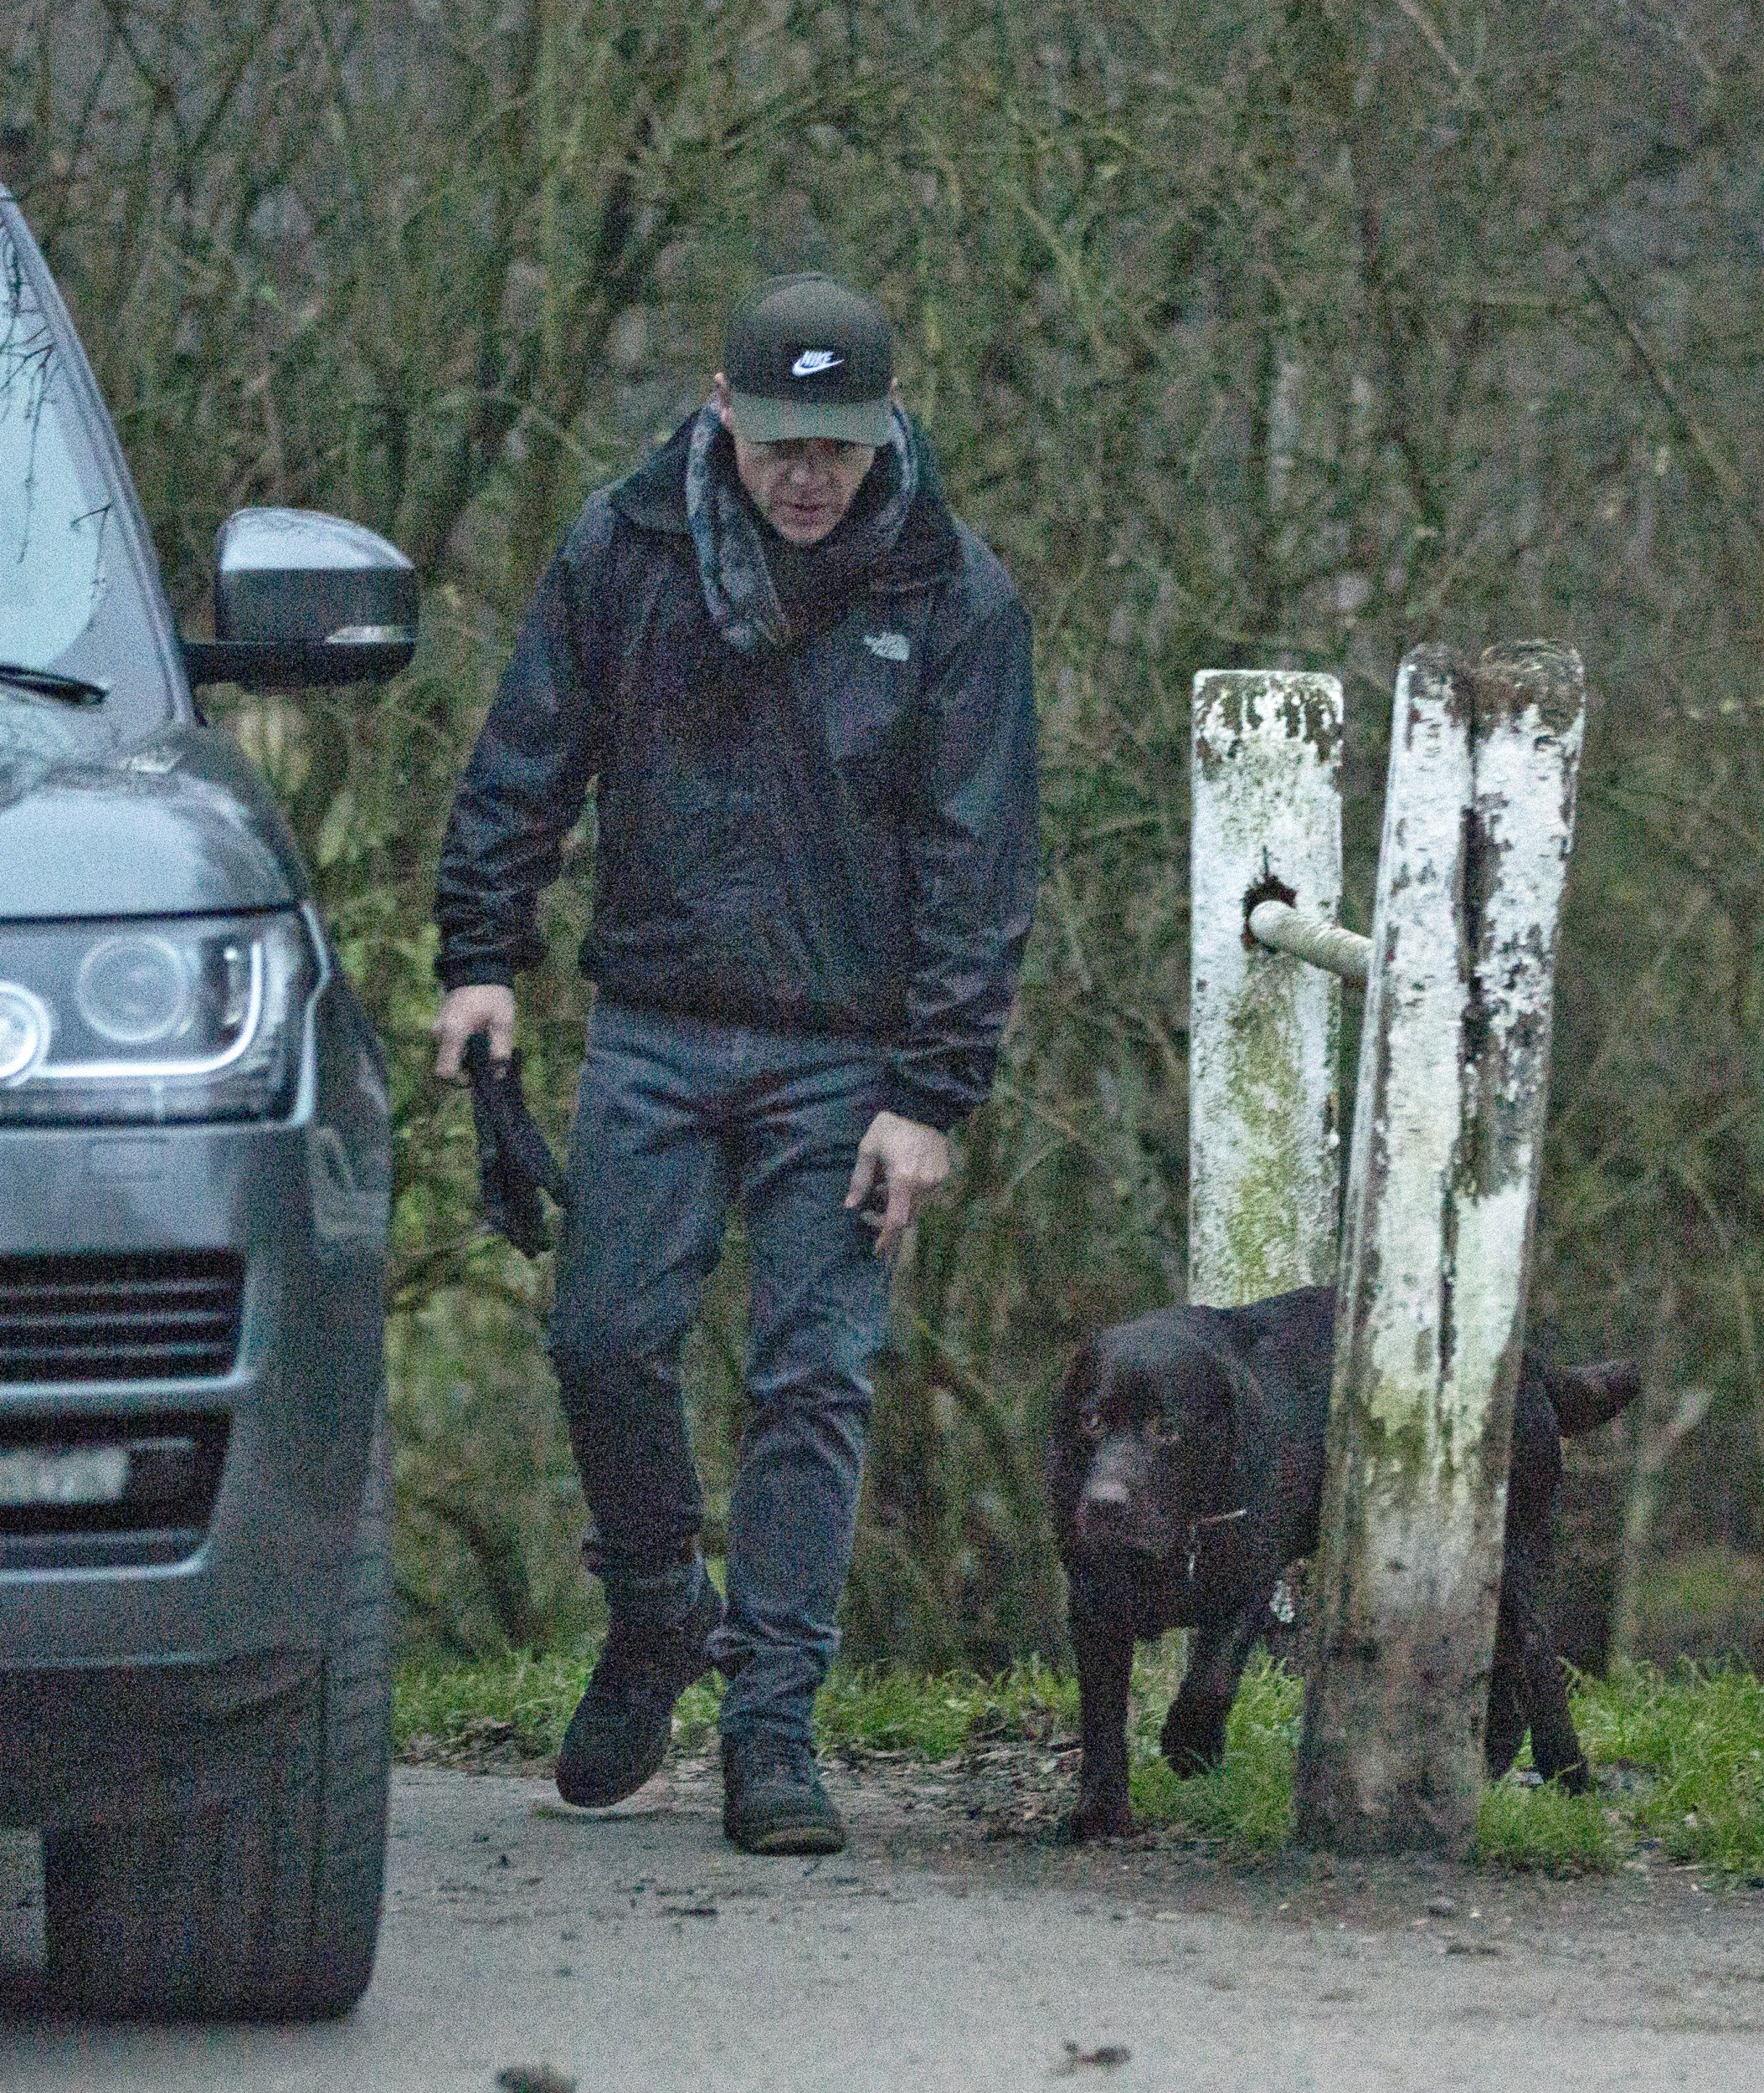 EXCLUSIVE: * Online Set Fee 250 GBP * * UK Print Min Set Fee 250 GBP - Double Fees Page 1 * British TV Presenter Ant McPartlin spotted out for a walk with his dog Hurley in London, England, UK. Pictured: Ant McPartlin Ref: SPL5053477 070119 EXCLUSIVE Picture by: SplashNews.com * Online Set Fee 250 GBP * * UK Print Min Set Fee 250 GBP - Double Fees Page 1 * Splash News and Pictures Los Angeles: 310-821-2666 New York: 212-619-2666 London: 0207 644 7656 Milan: 02 4399 8577 photodesk@splashnews.com World Rights